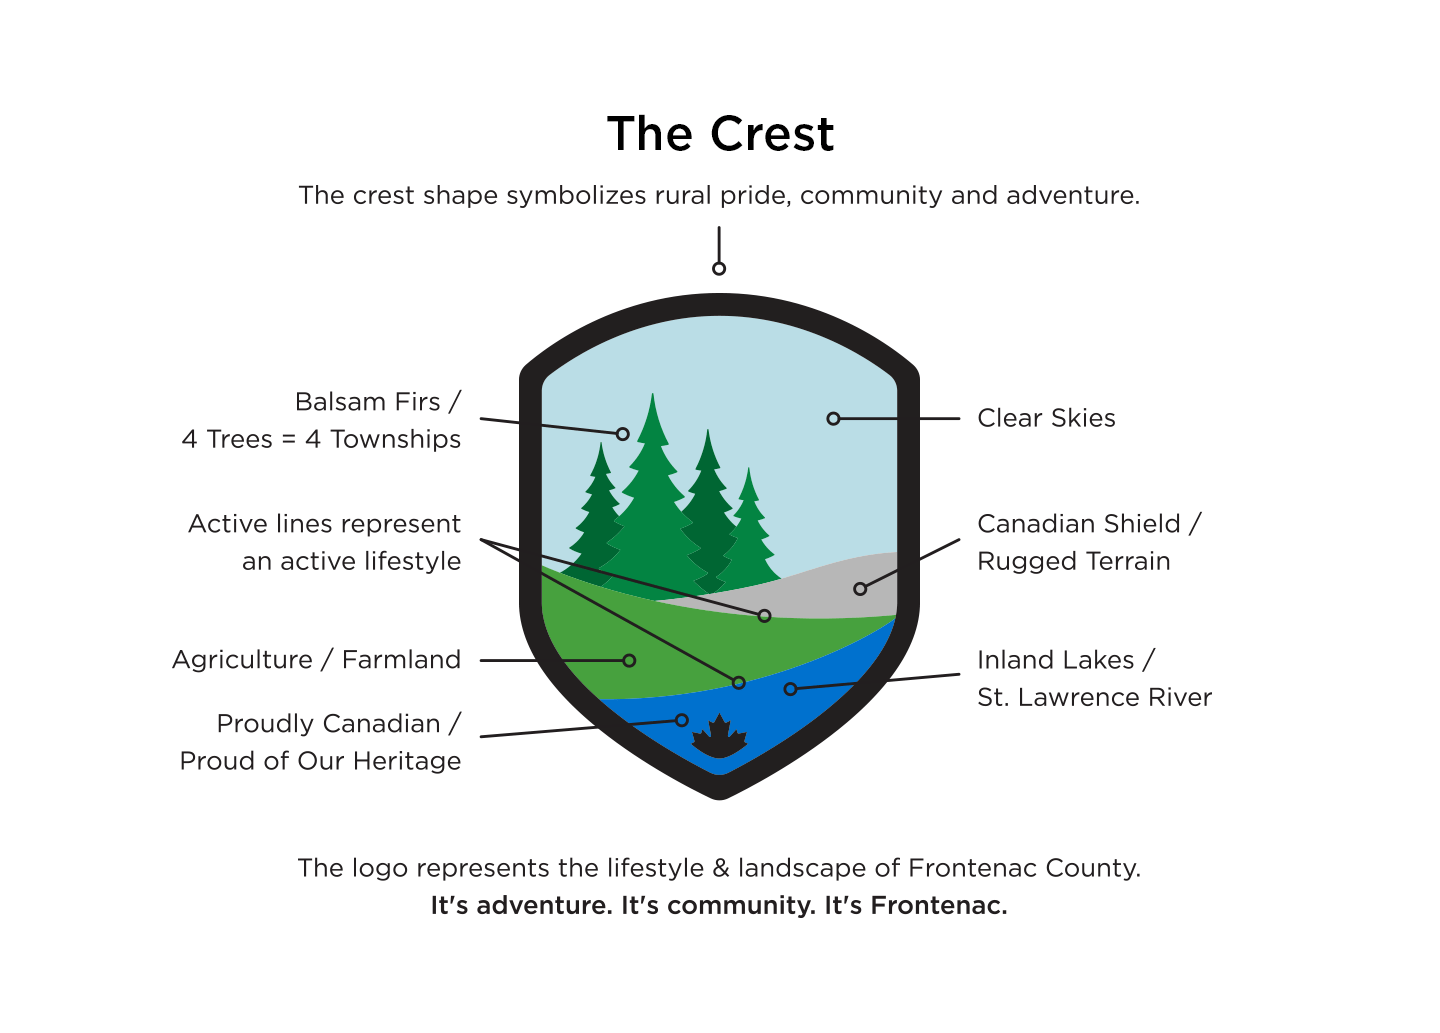 frontenac-crest-meaning